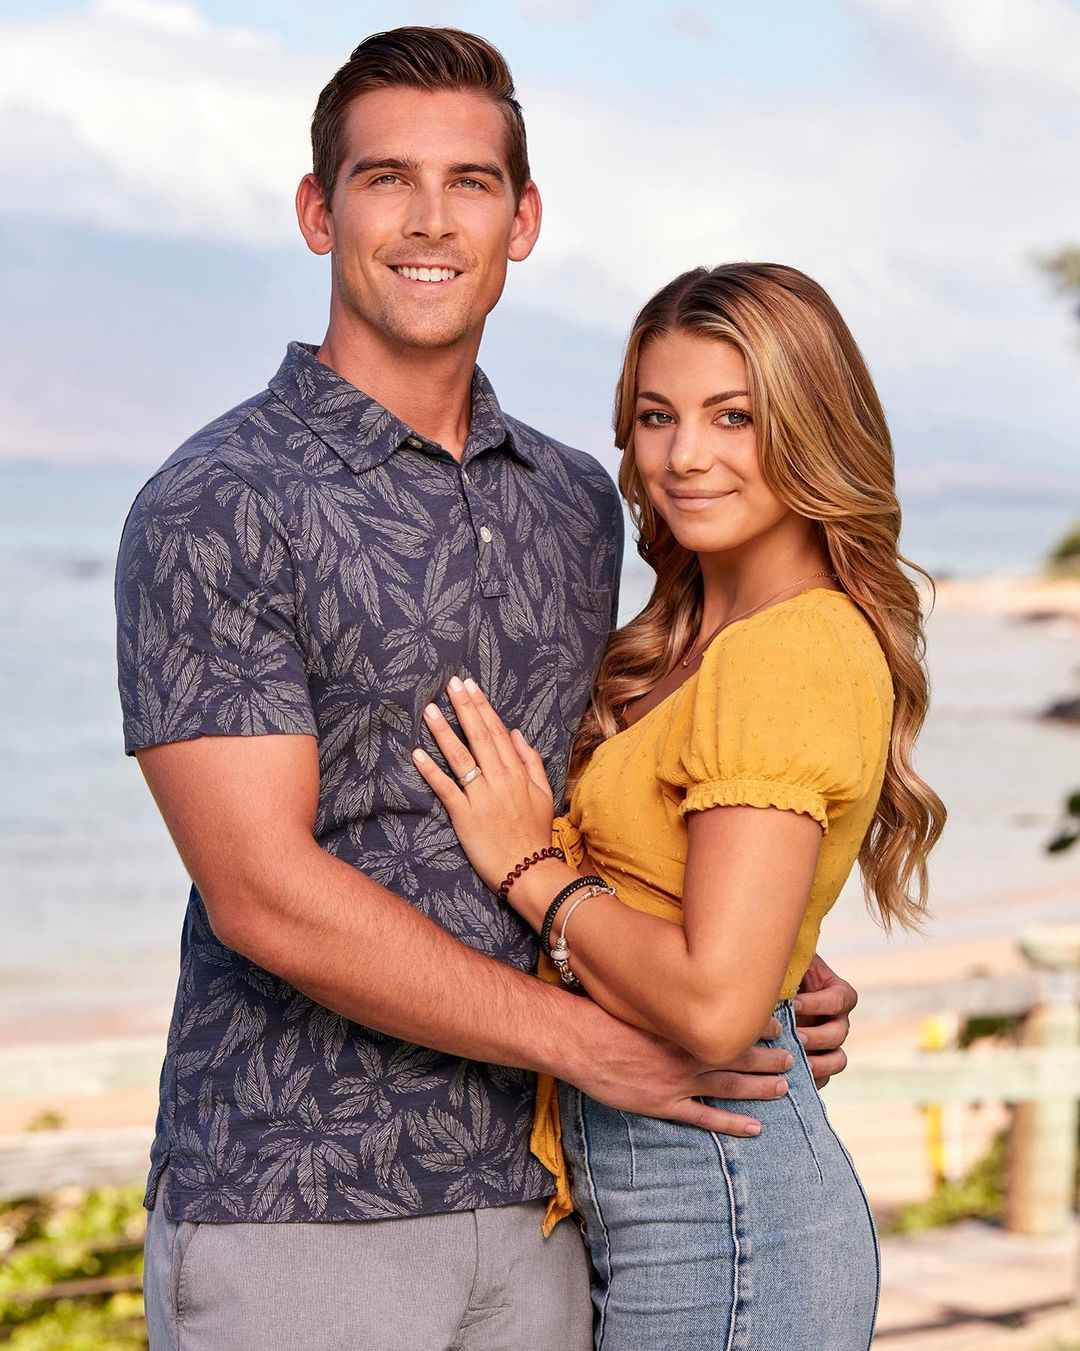 Erin and Corey of Temptation Island